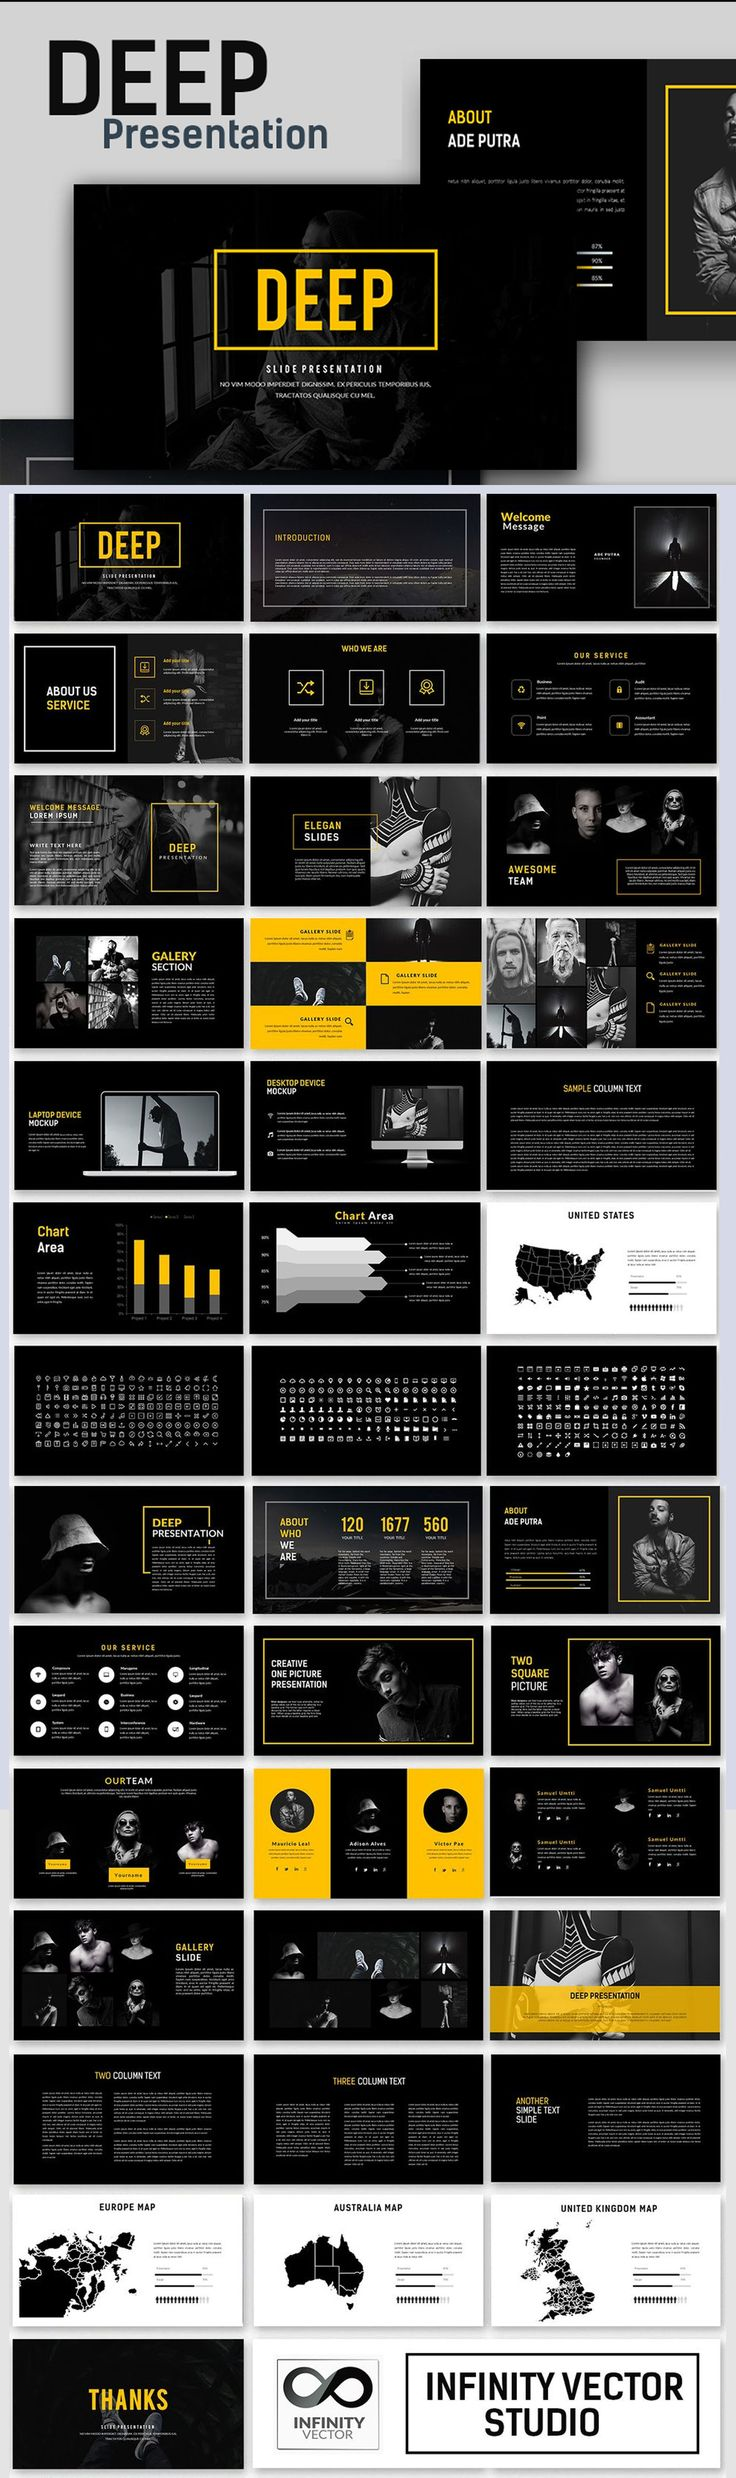 115 best Marketing Powerpoint Templates images on Pinterest ...